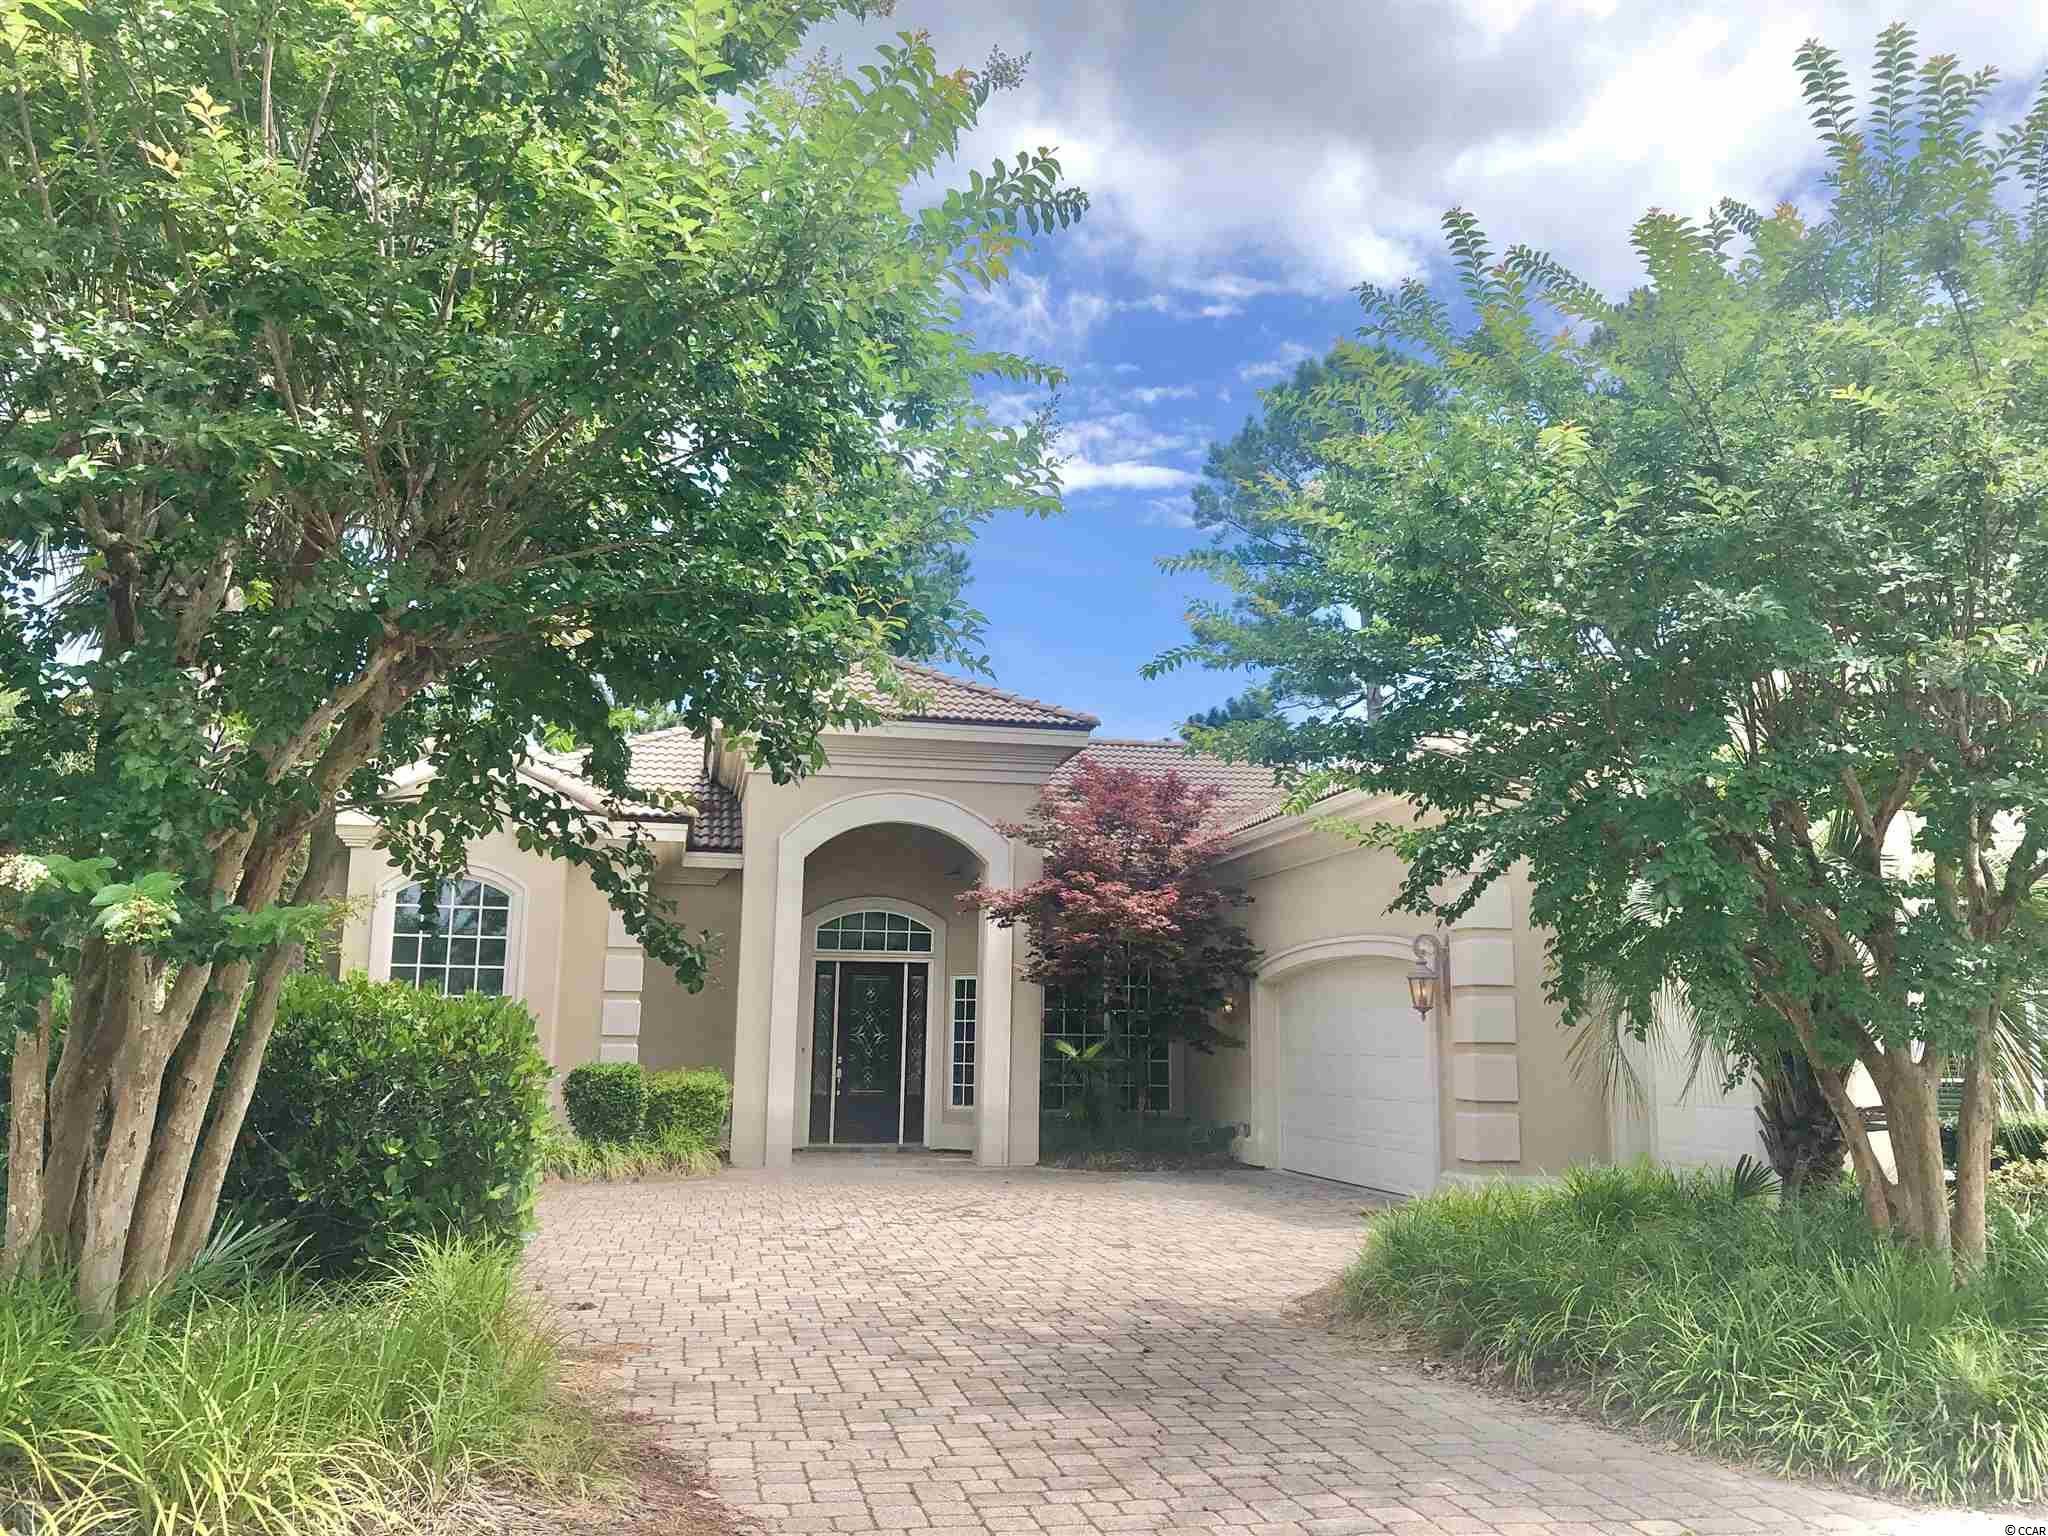 Located in the Prestigious Gated Golf Community - Grande Dunes! This Beautifully Renovated 3 Bedroom 2 Bath Home will not last long! Boasting High Ceilings, Updated Flooring, Fresh Paint, Luxury Tiled Bathrooms, 3 Car Garage, Golf Course View & So Much More! Amenities include a 25,000 square foot OceanClub with fine dining, an oceanfront pool deck with food & beverage service, meeting rooms and tons of fun activities! The community also has two 18-hole golf courses, several on-site restaurants, a deep water marina, tennis facility and miles of biking/walking trails!